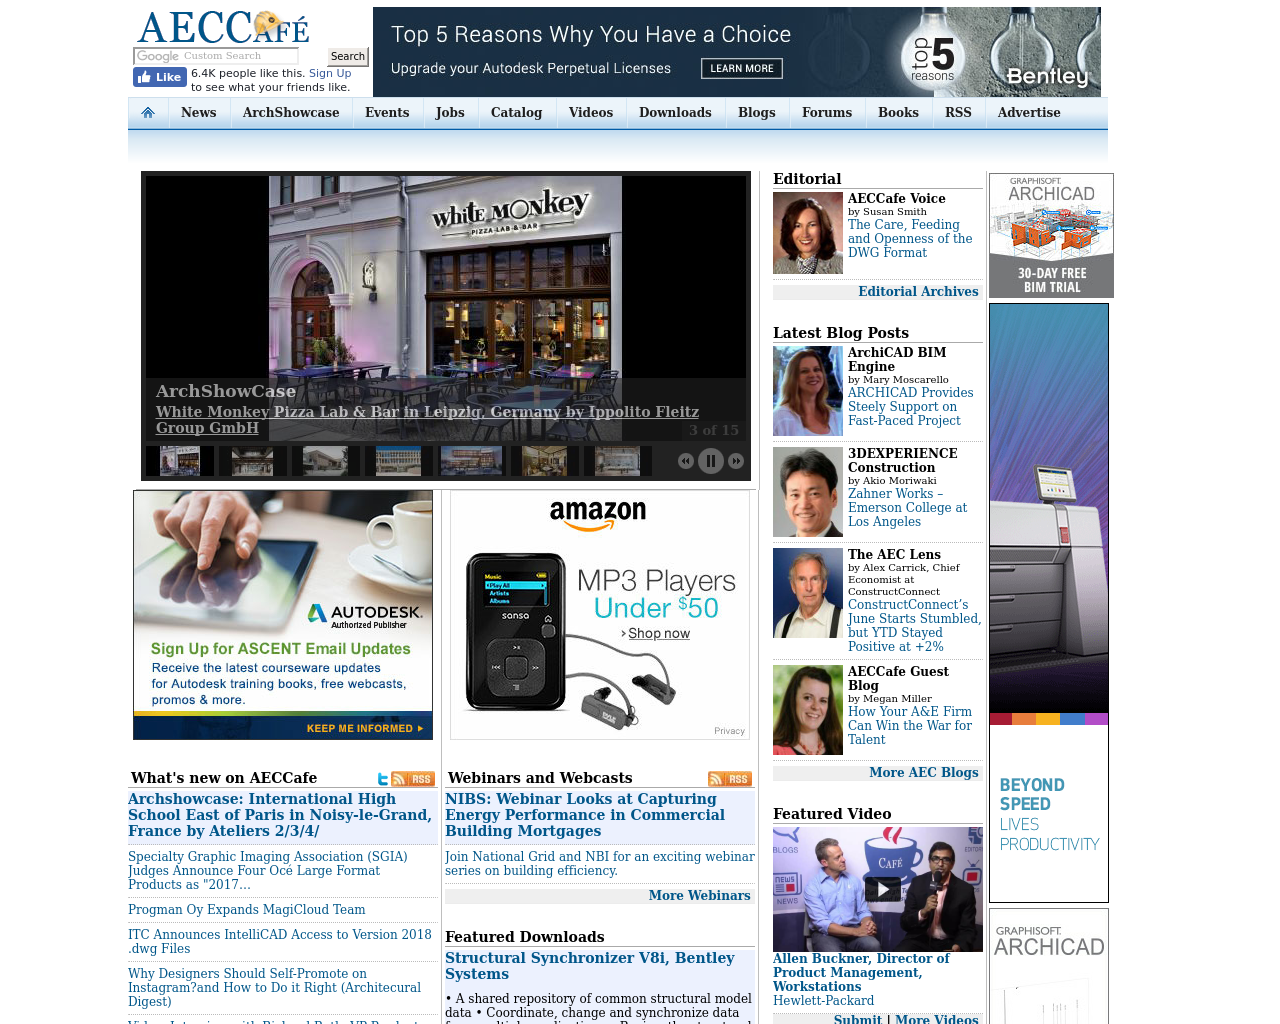 AECCafe-Advertising-Reviews-Pricing